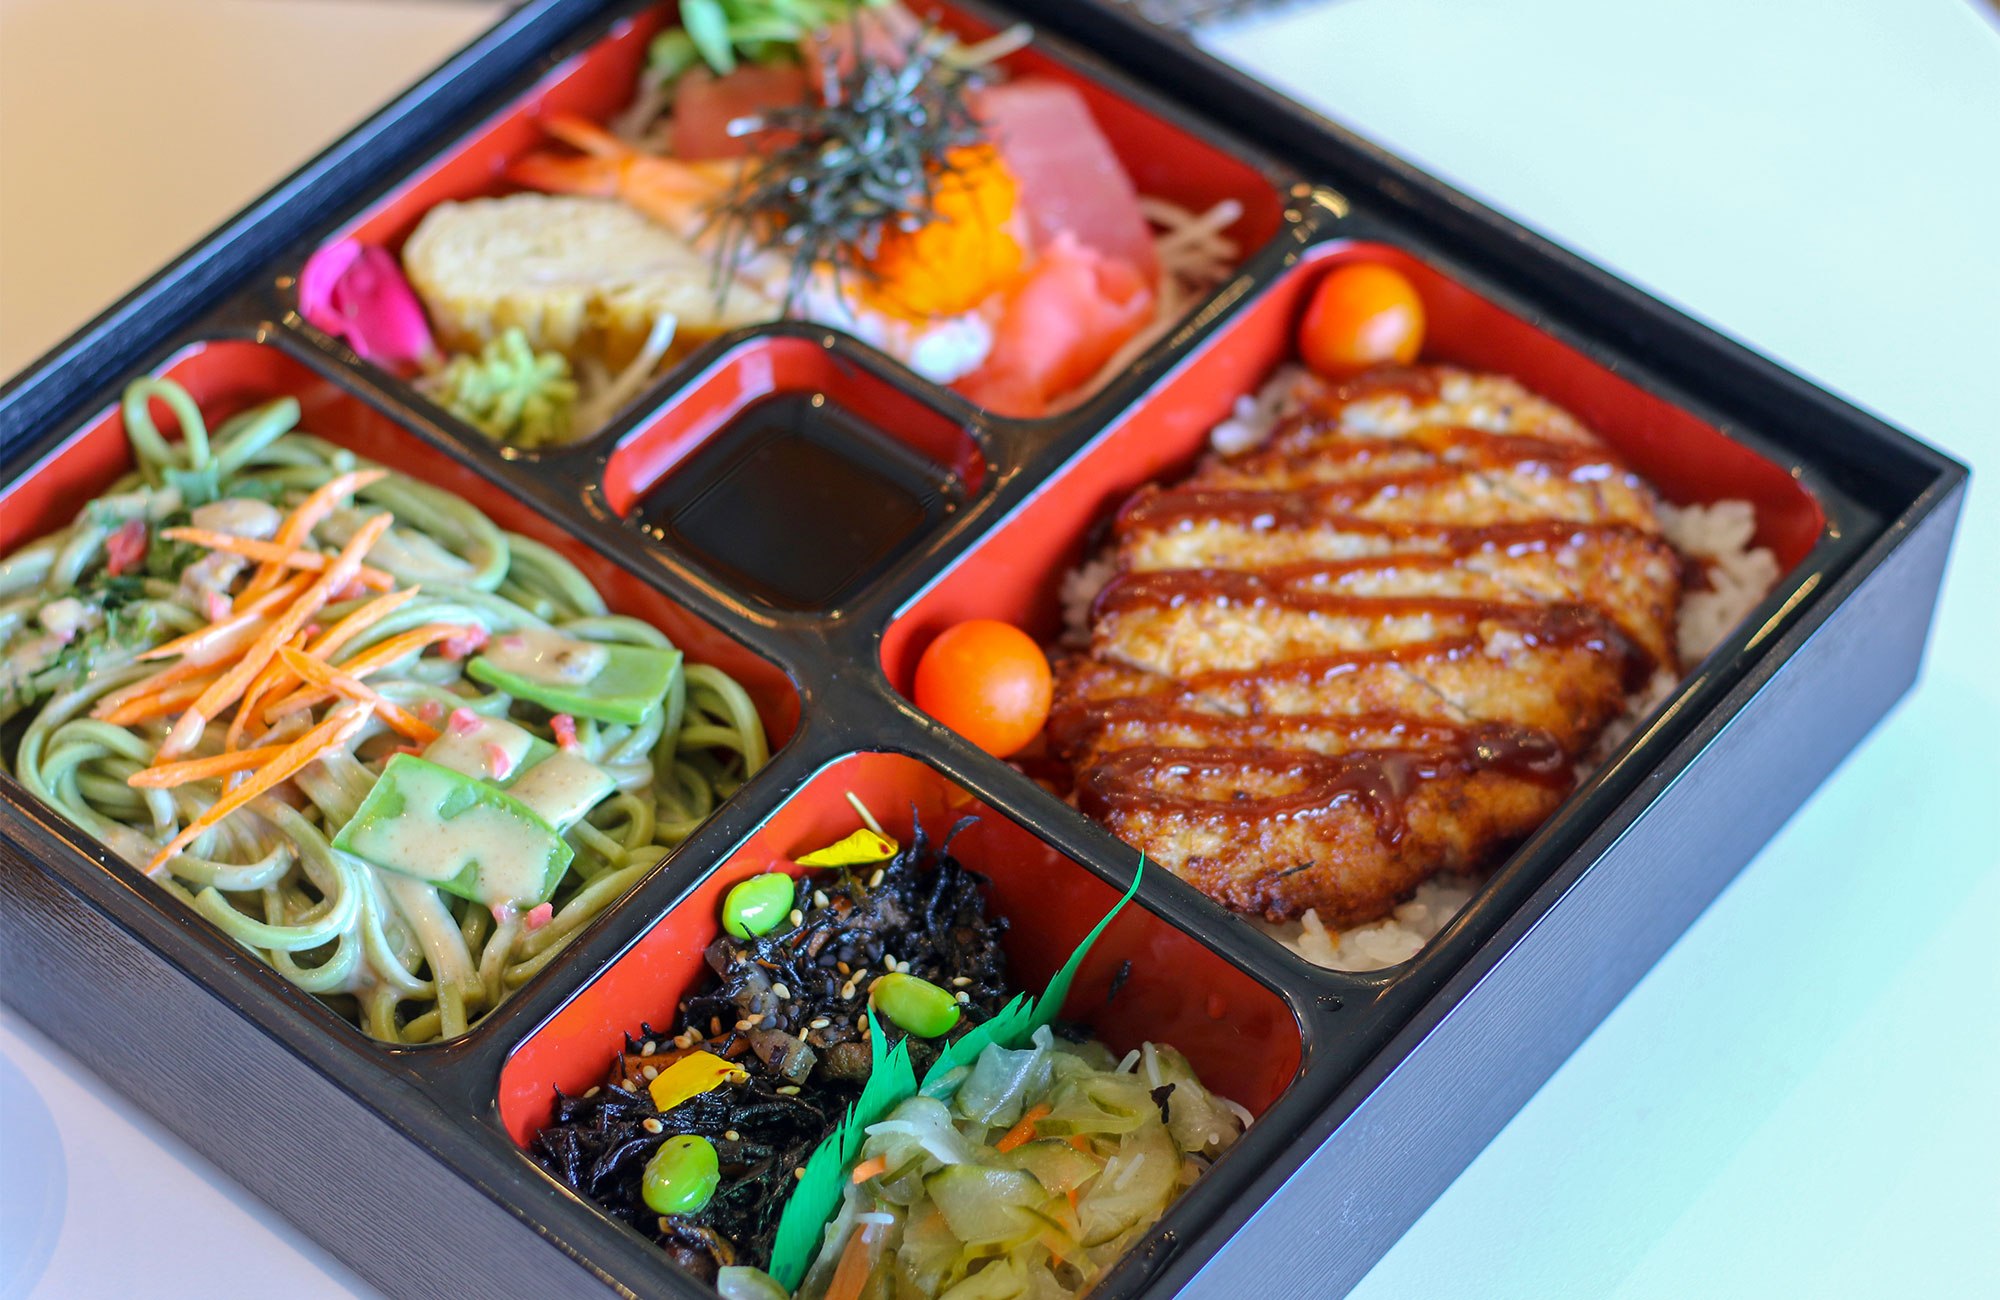 Bento Box with chicken Katsu at Taste of Tea in Healdsburg. Heather Irwin/PD